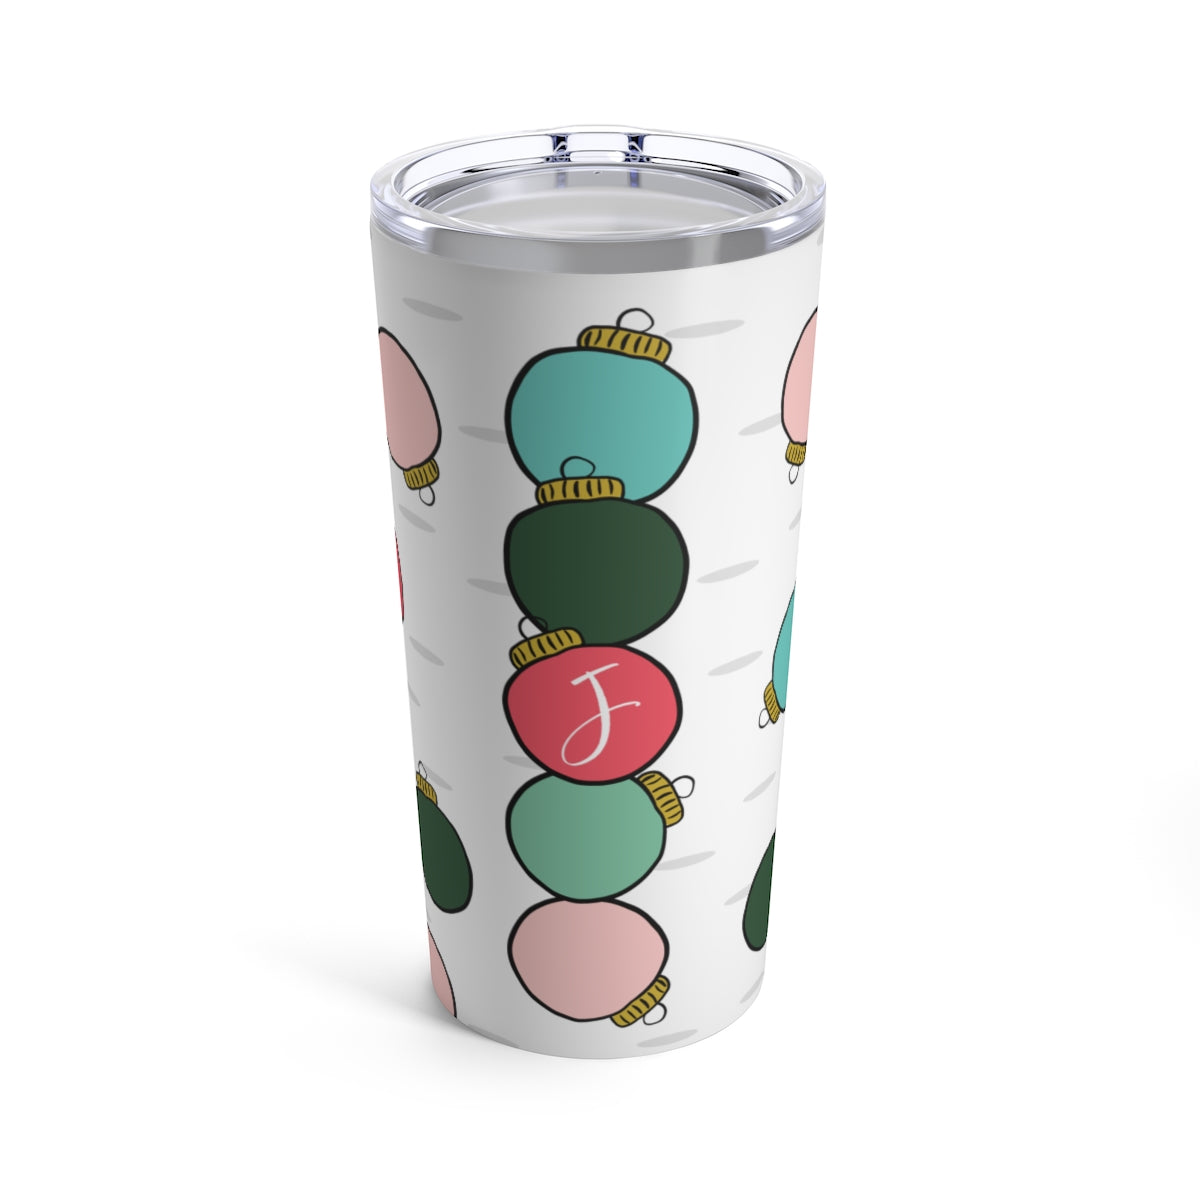 CUSTOMIZED Ornament Letter Tumbler | Limited Edition Holiday